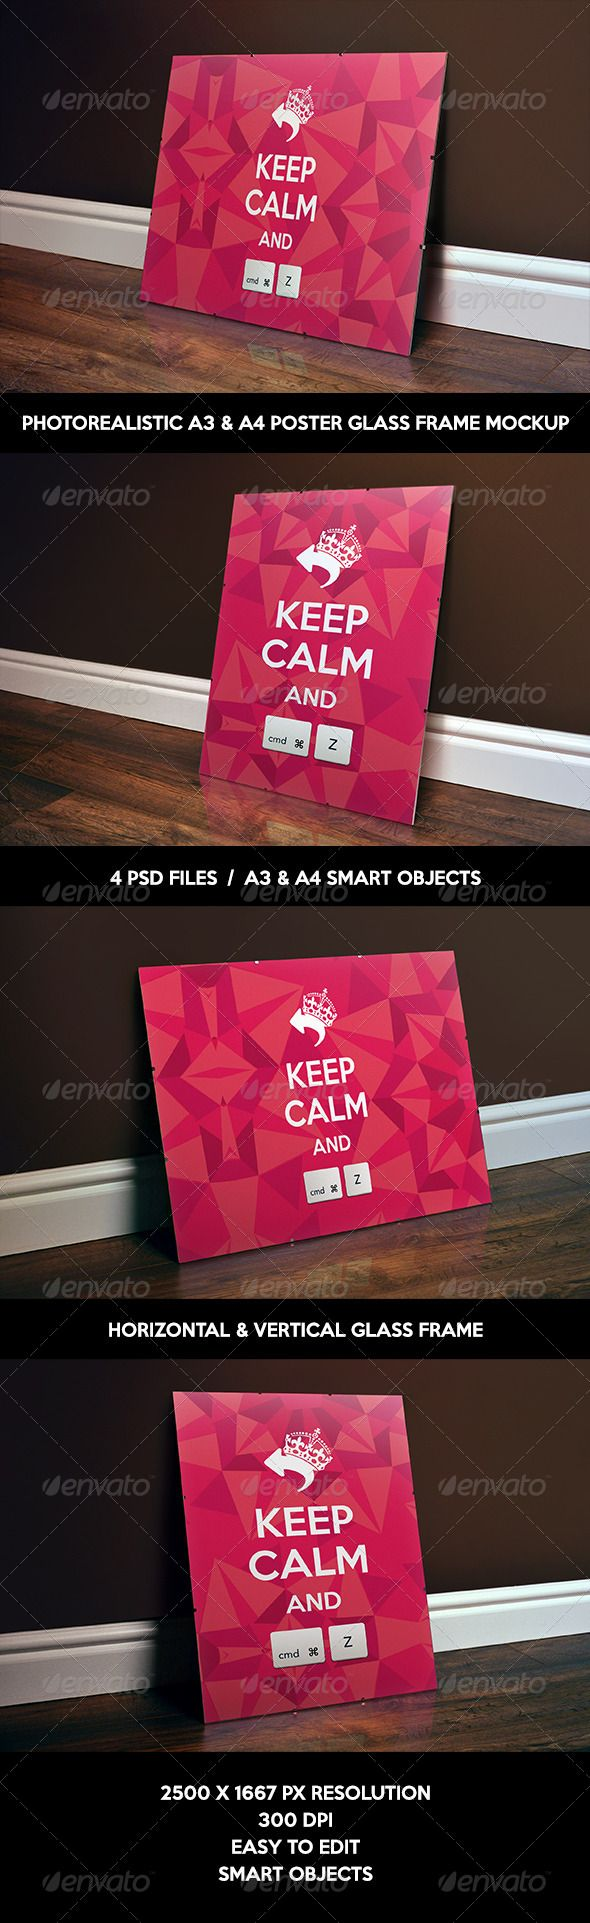 Photorealistic glass frame/clip frame/antiframe poster mockup. Perfect for presentation of your poster/flyer design.  - 4 PSD files  - A4 & A3 Smart Objects  - 300 DPI  - 2500×1667 px dimensions  - Easy to edit